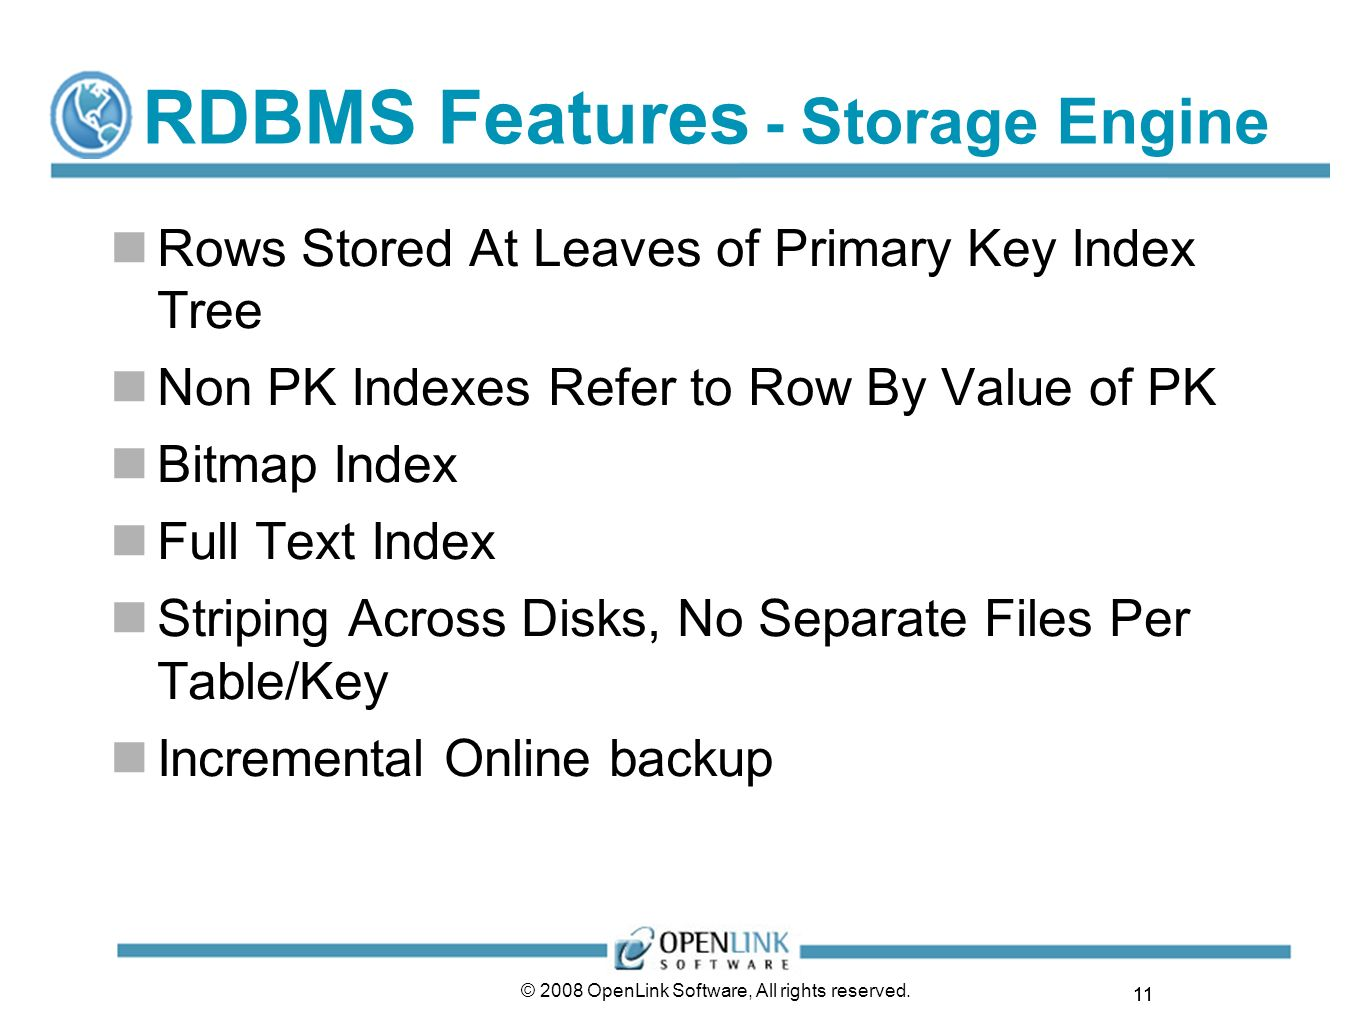 11 © 2008 OpenLink Software, All rights reserved. RDBMS Features - Storage Engine Rows Stored At Leaves of Primary Key Index Tree Non PK Indexes Refer